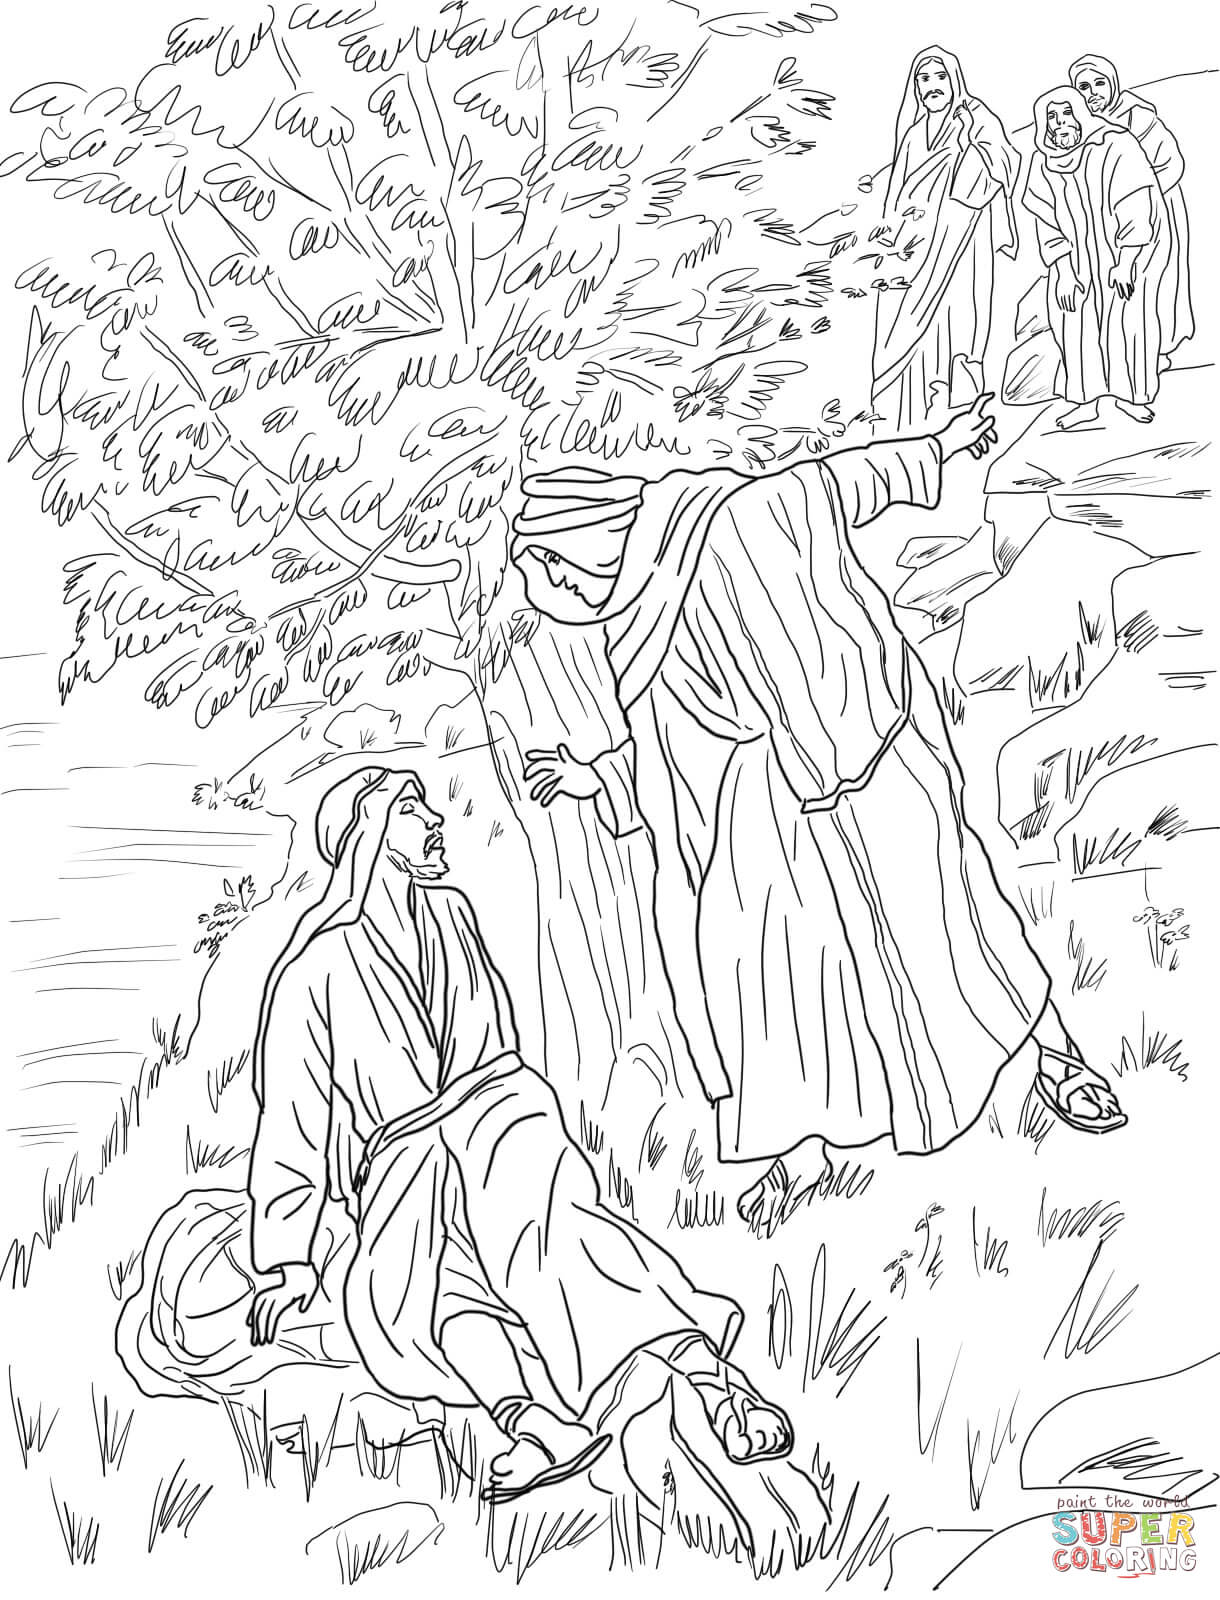 Cana marriage miracle coloring sheet | Water into wine, Coloring ... | 1600x1220